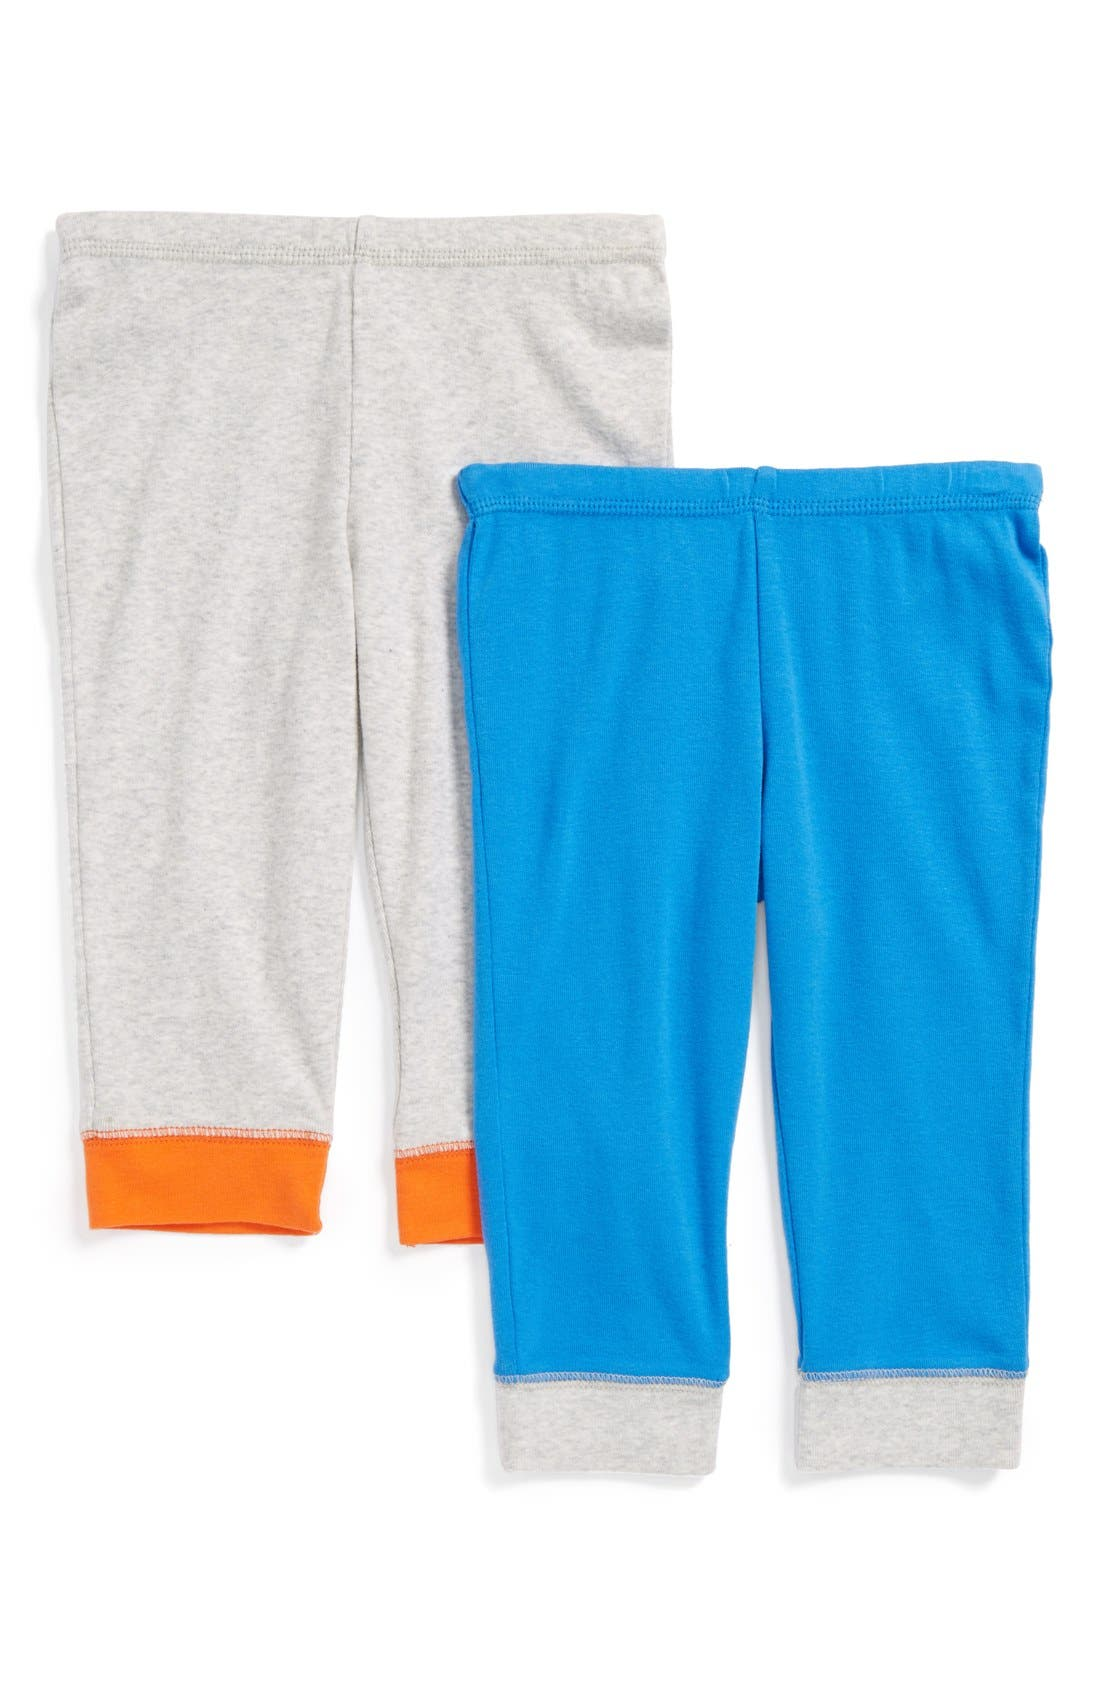 Main Image - Stem Baby Colorblock Organic Cotton Pants (Set of 2) (Baby Boys) (Nordstrom Exclusive)